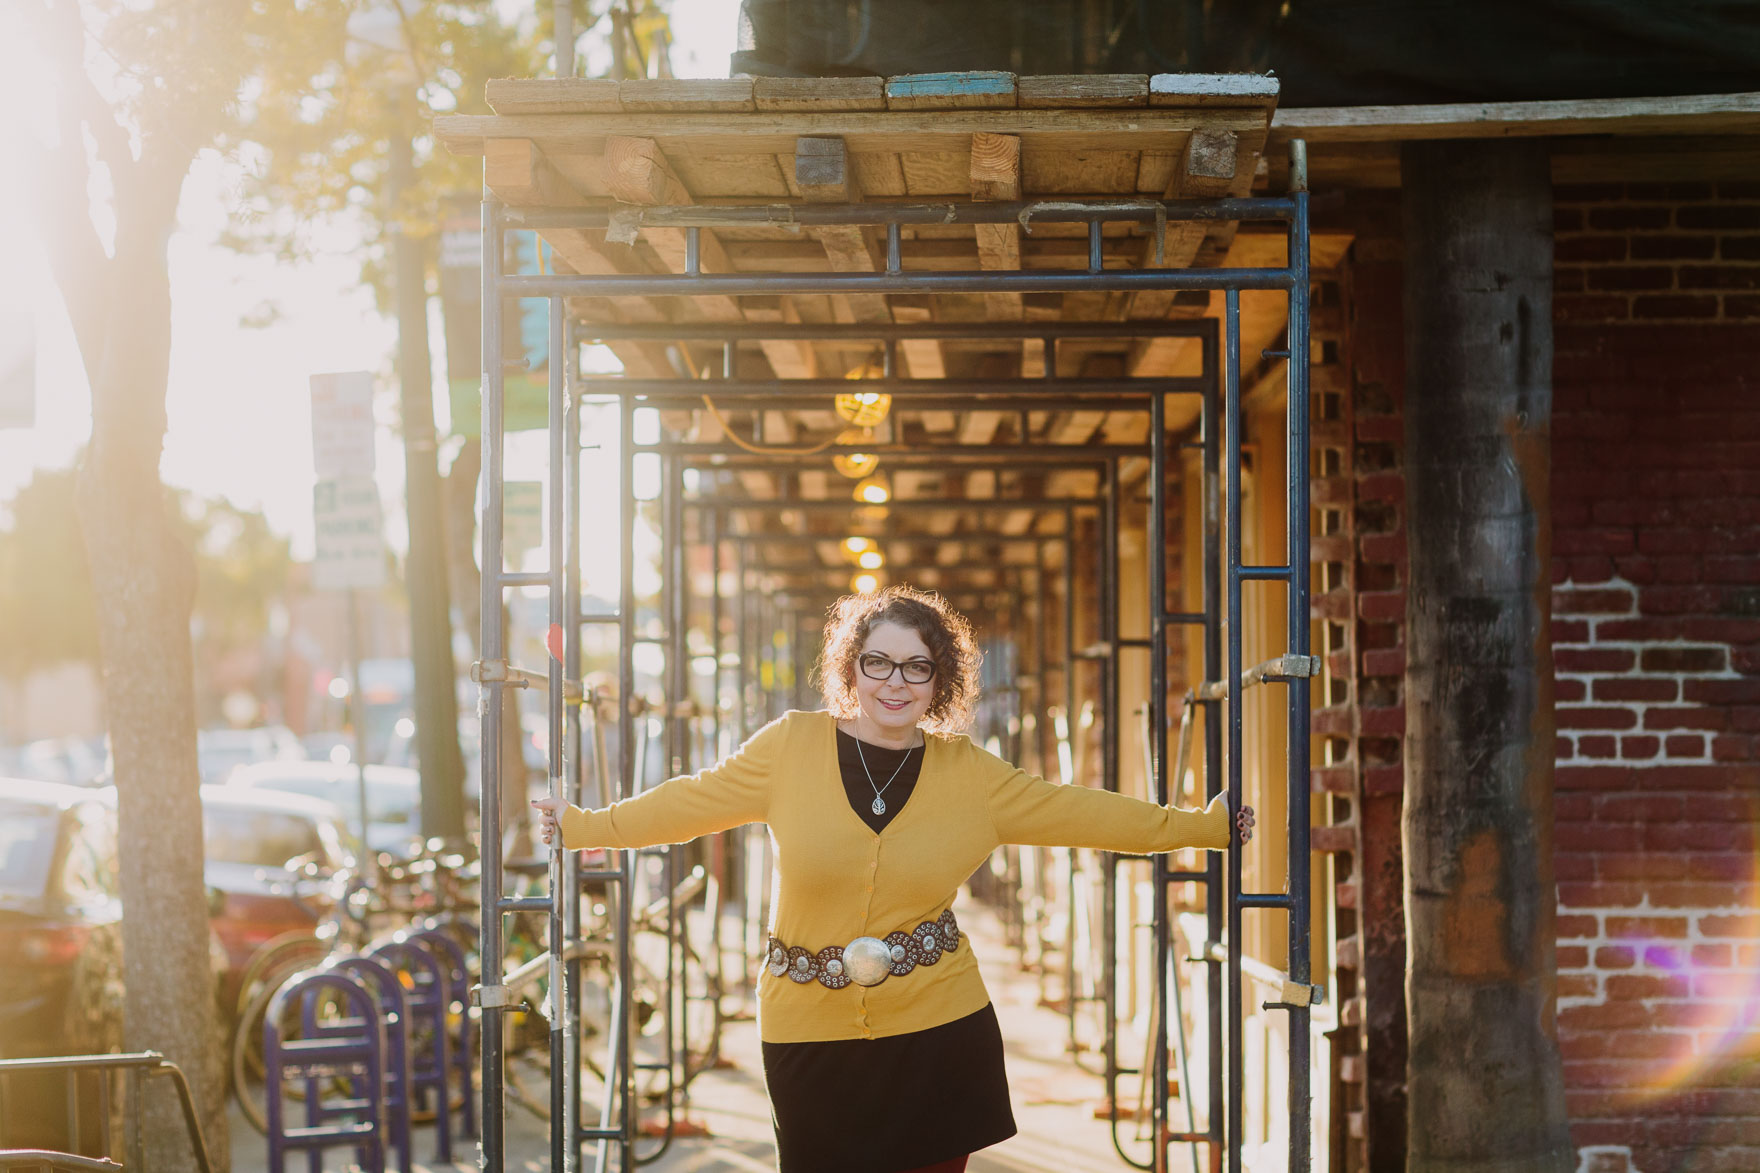 A Neighborhood Spark Session – Photo by Let's Frolic Together